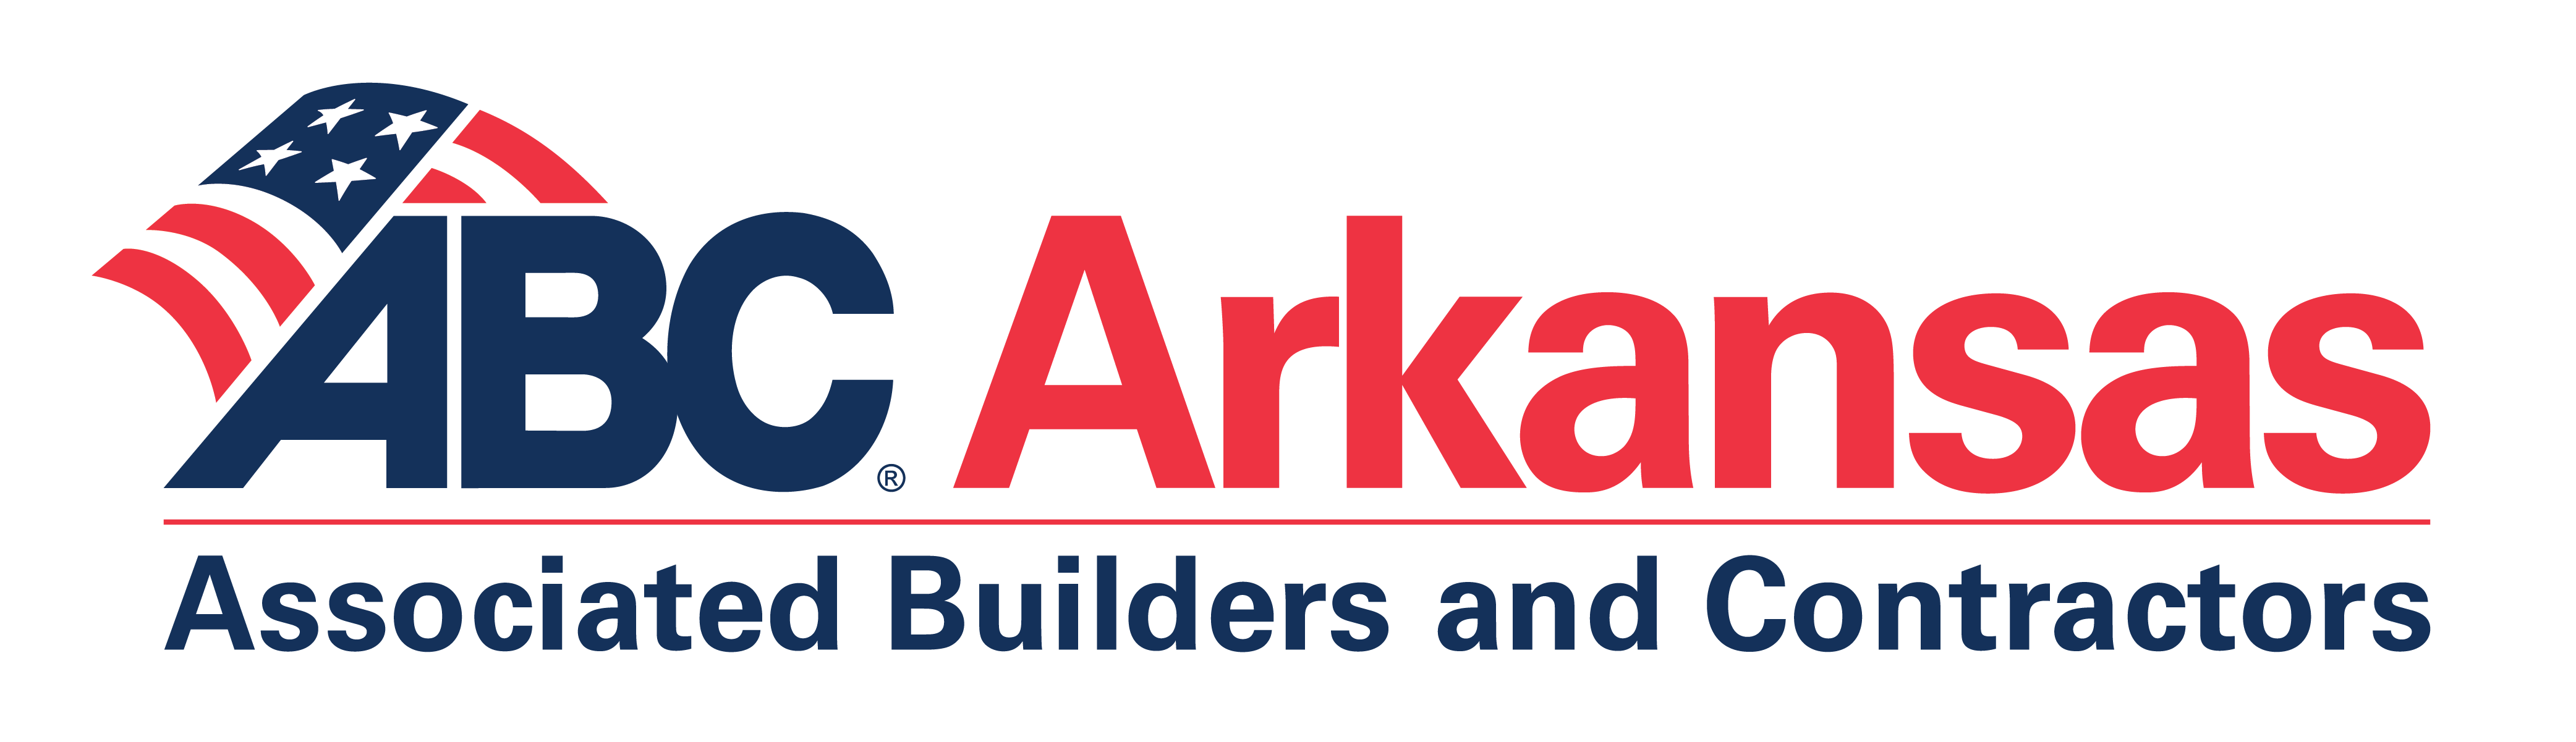 Associated Builders and Contractors, Inc. - Arkansas Chapter